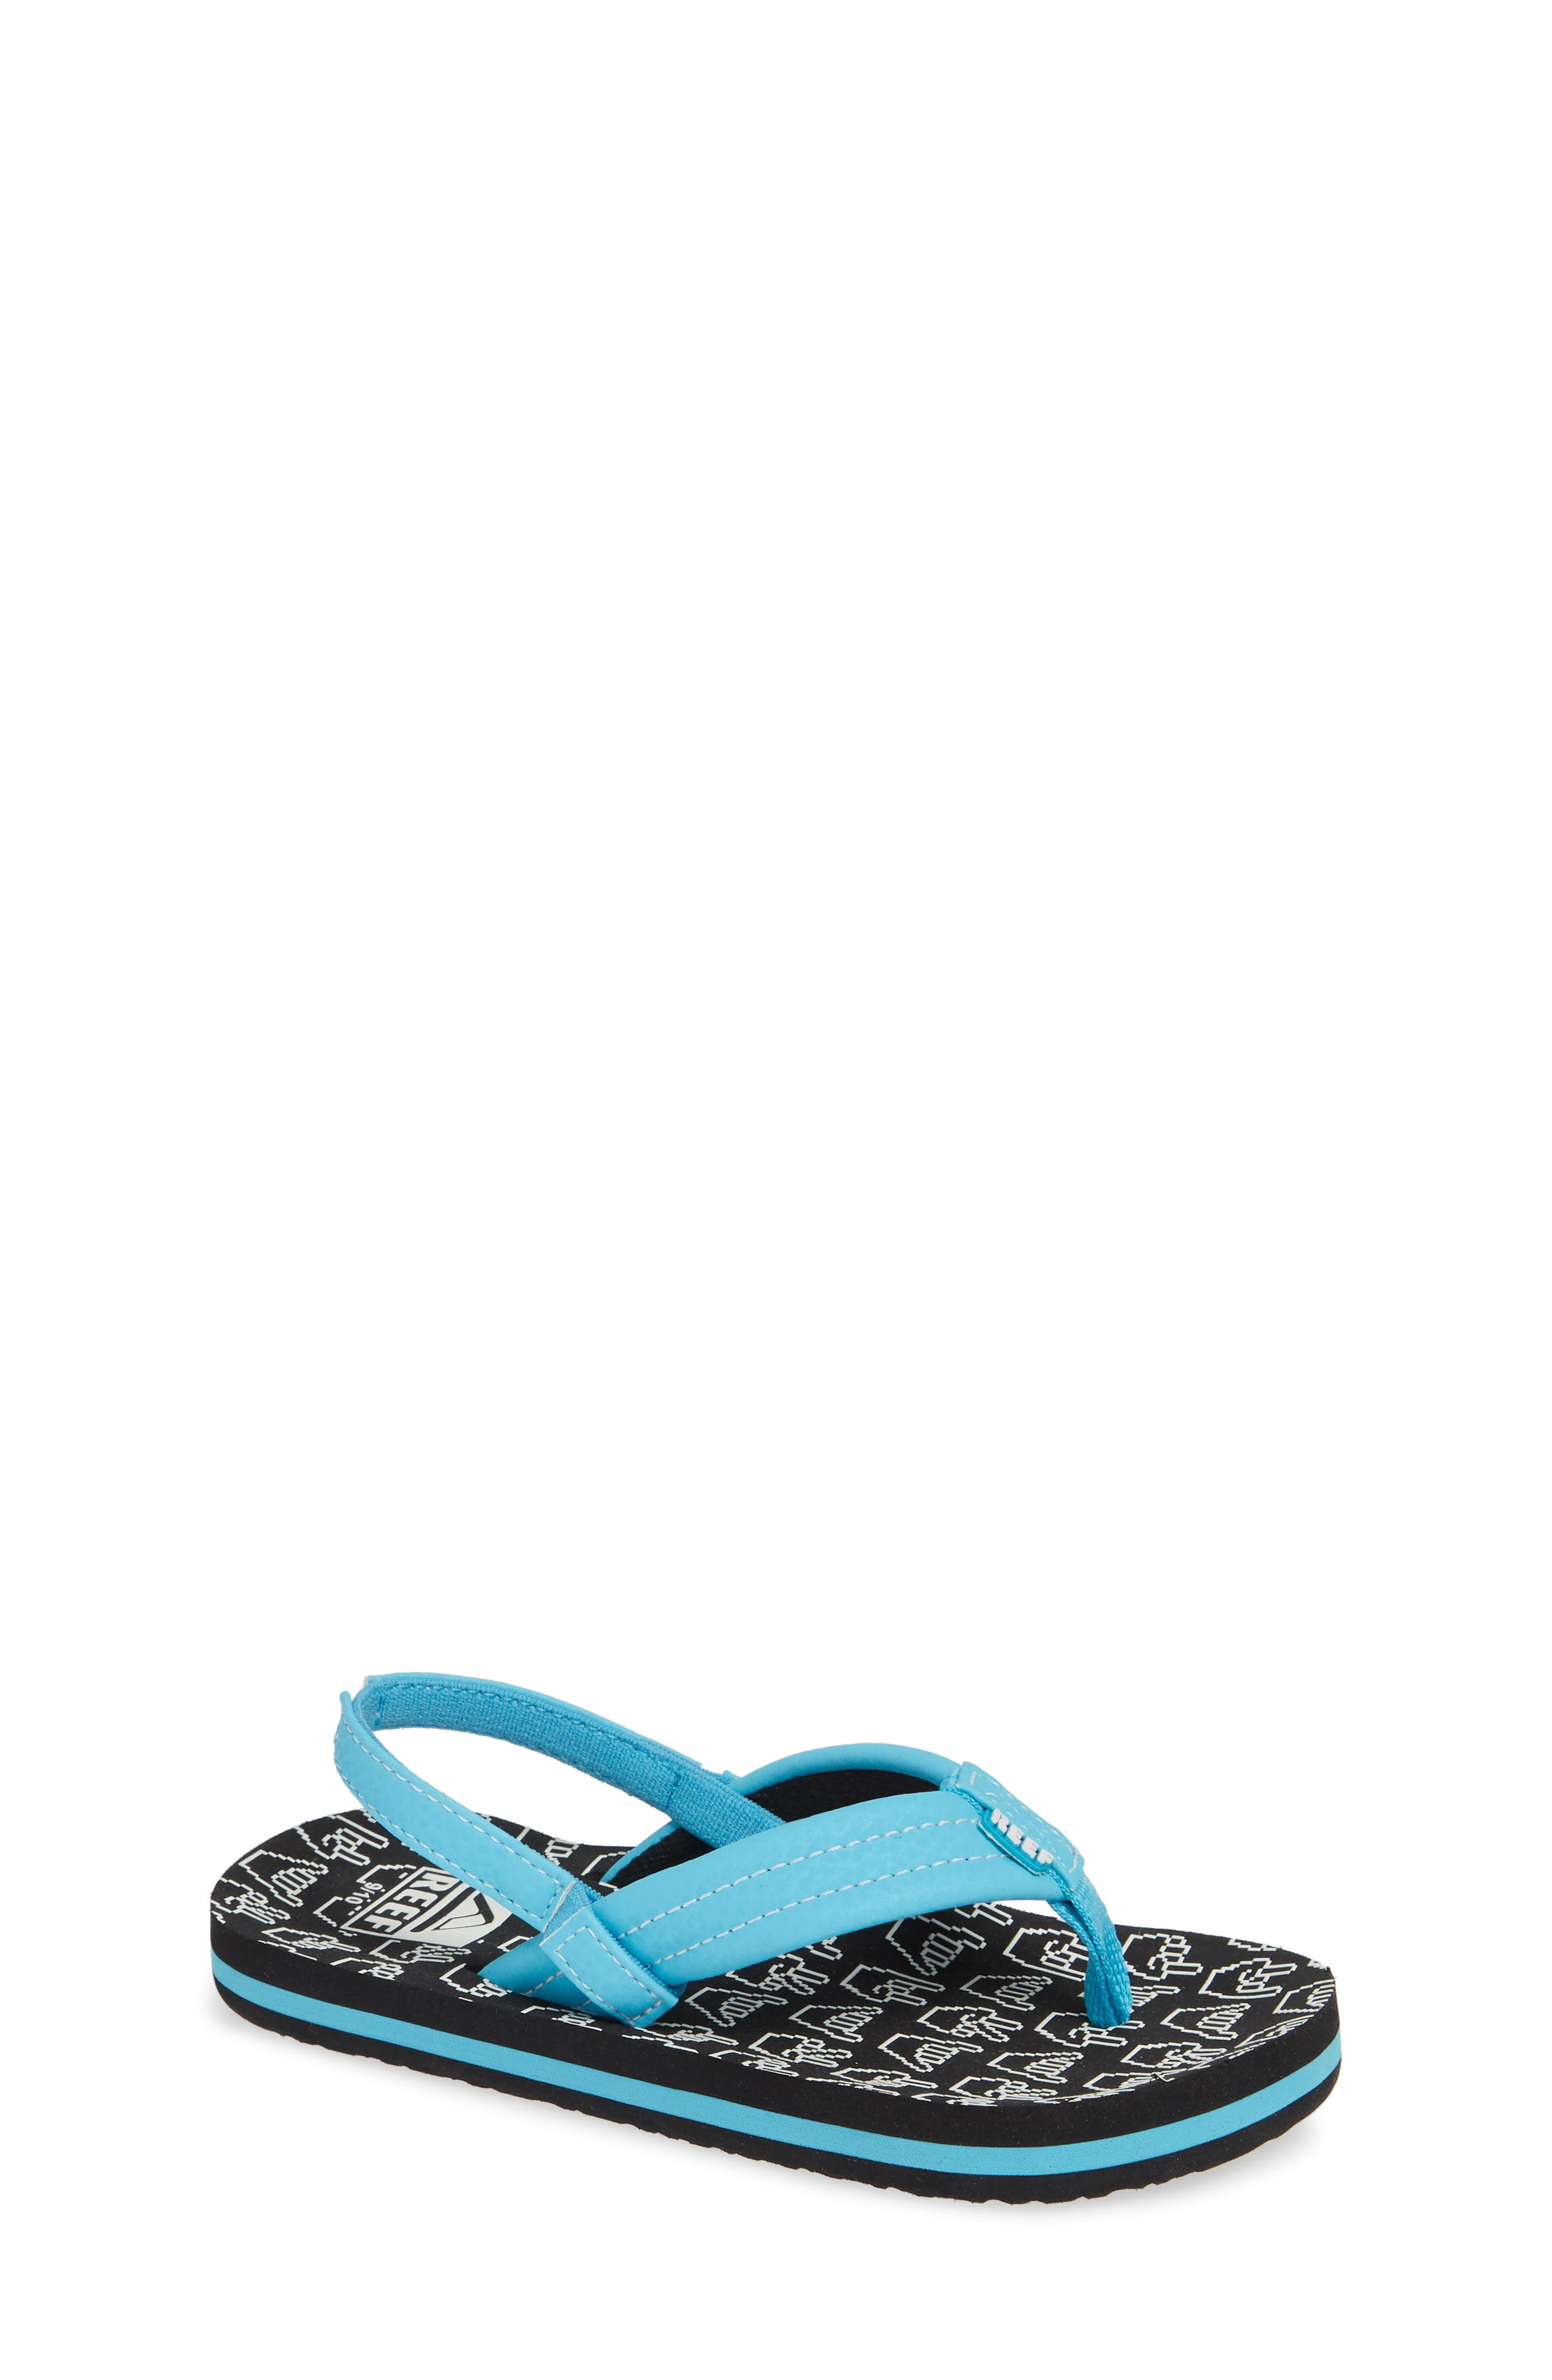 REEF Ahi Glow in the Dark Flip Flop, Main, color, SHAKA GLOW